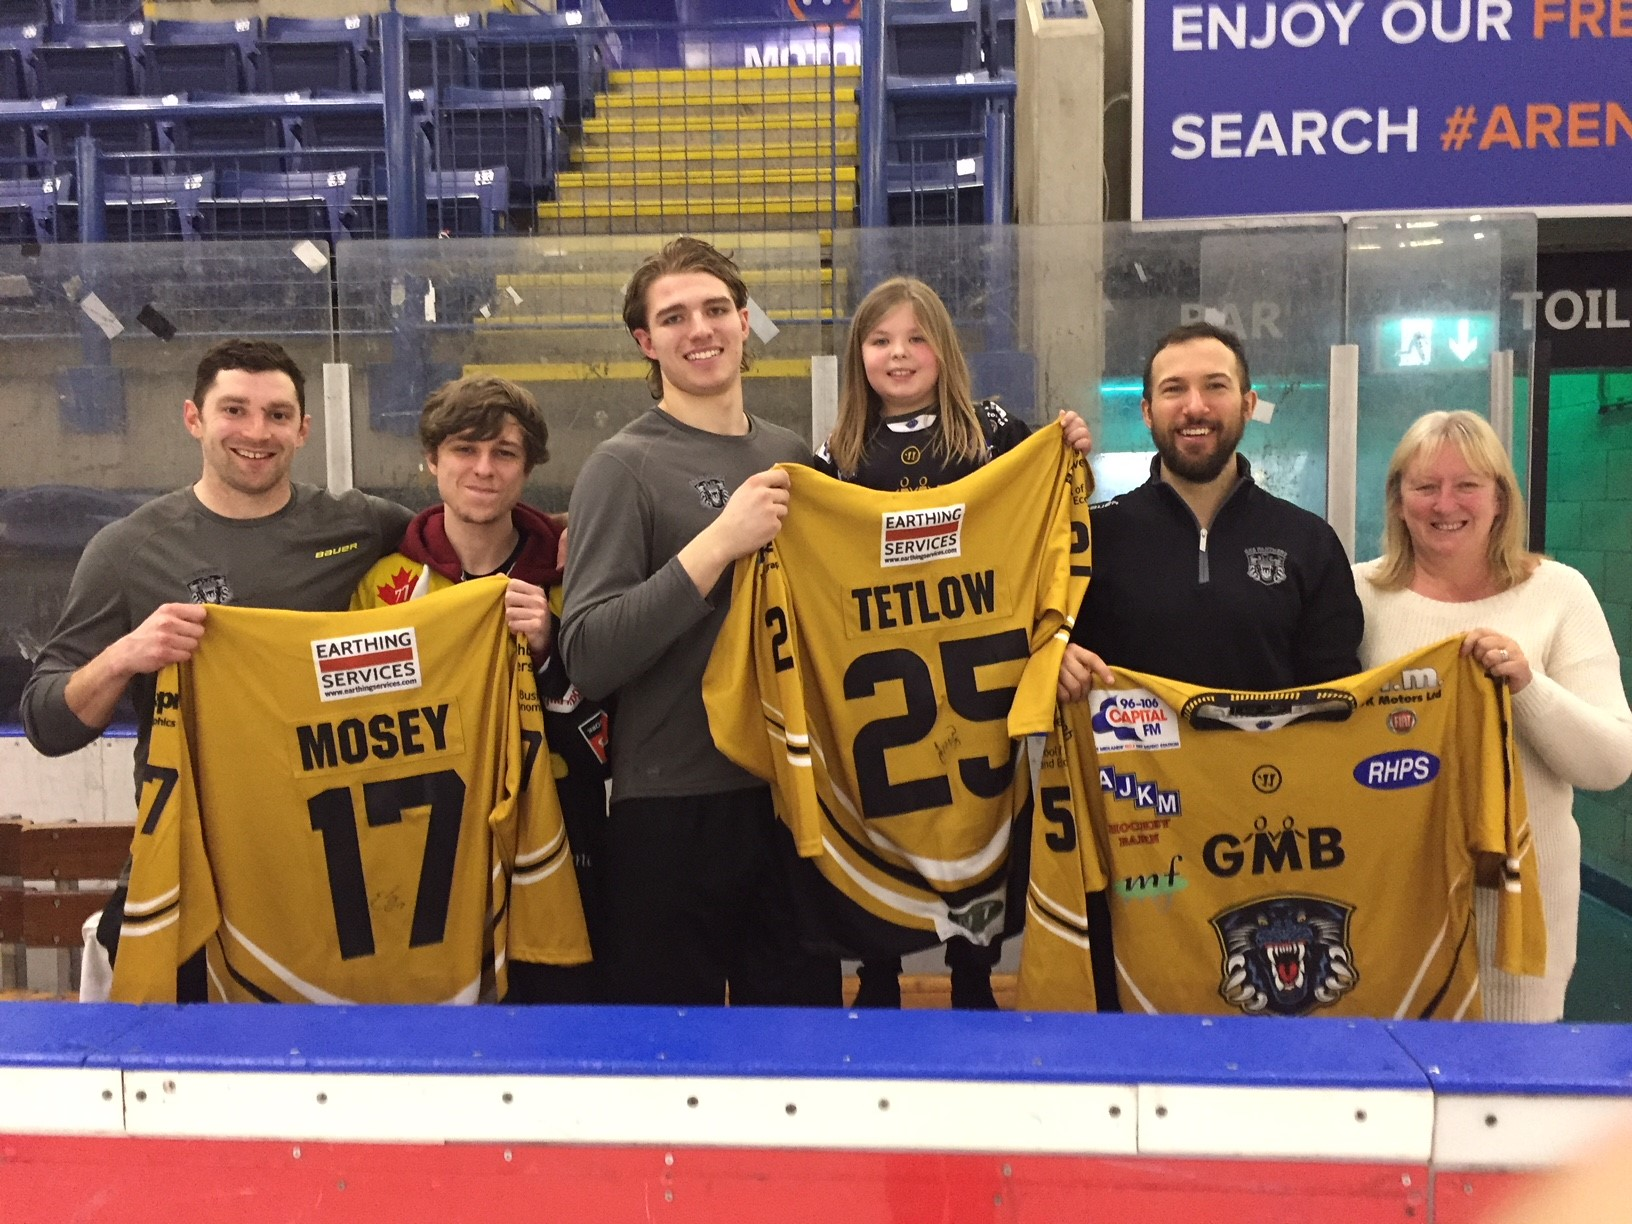 Tetlow, Vaskivuo and Mosey hand over shirts Top Image